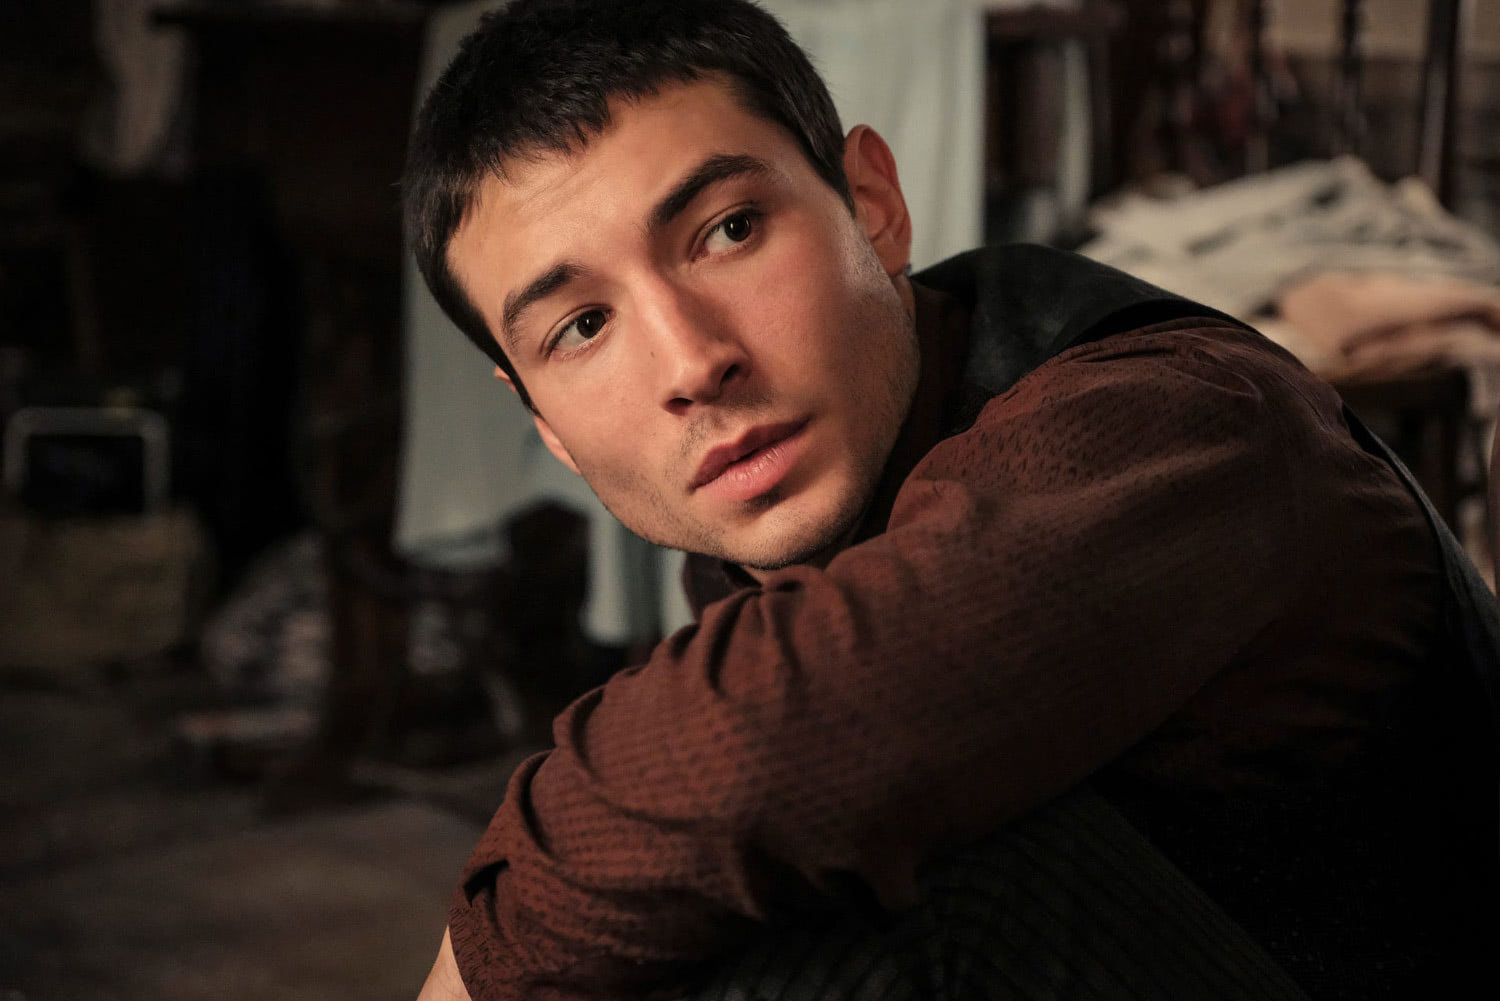 Credence looks over his shoulder